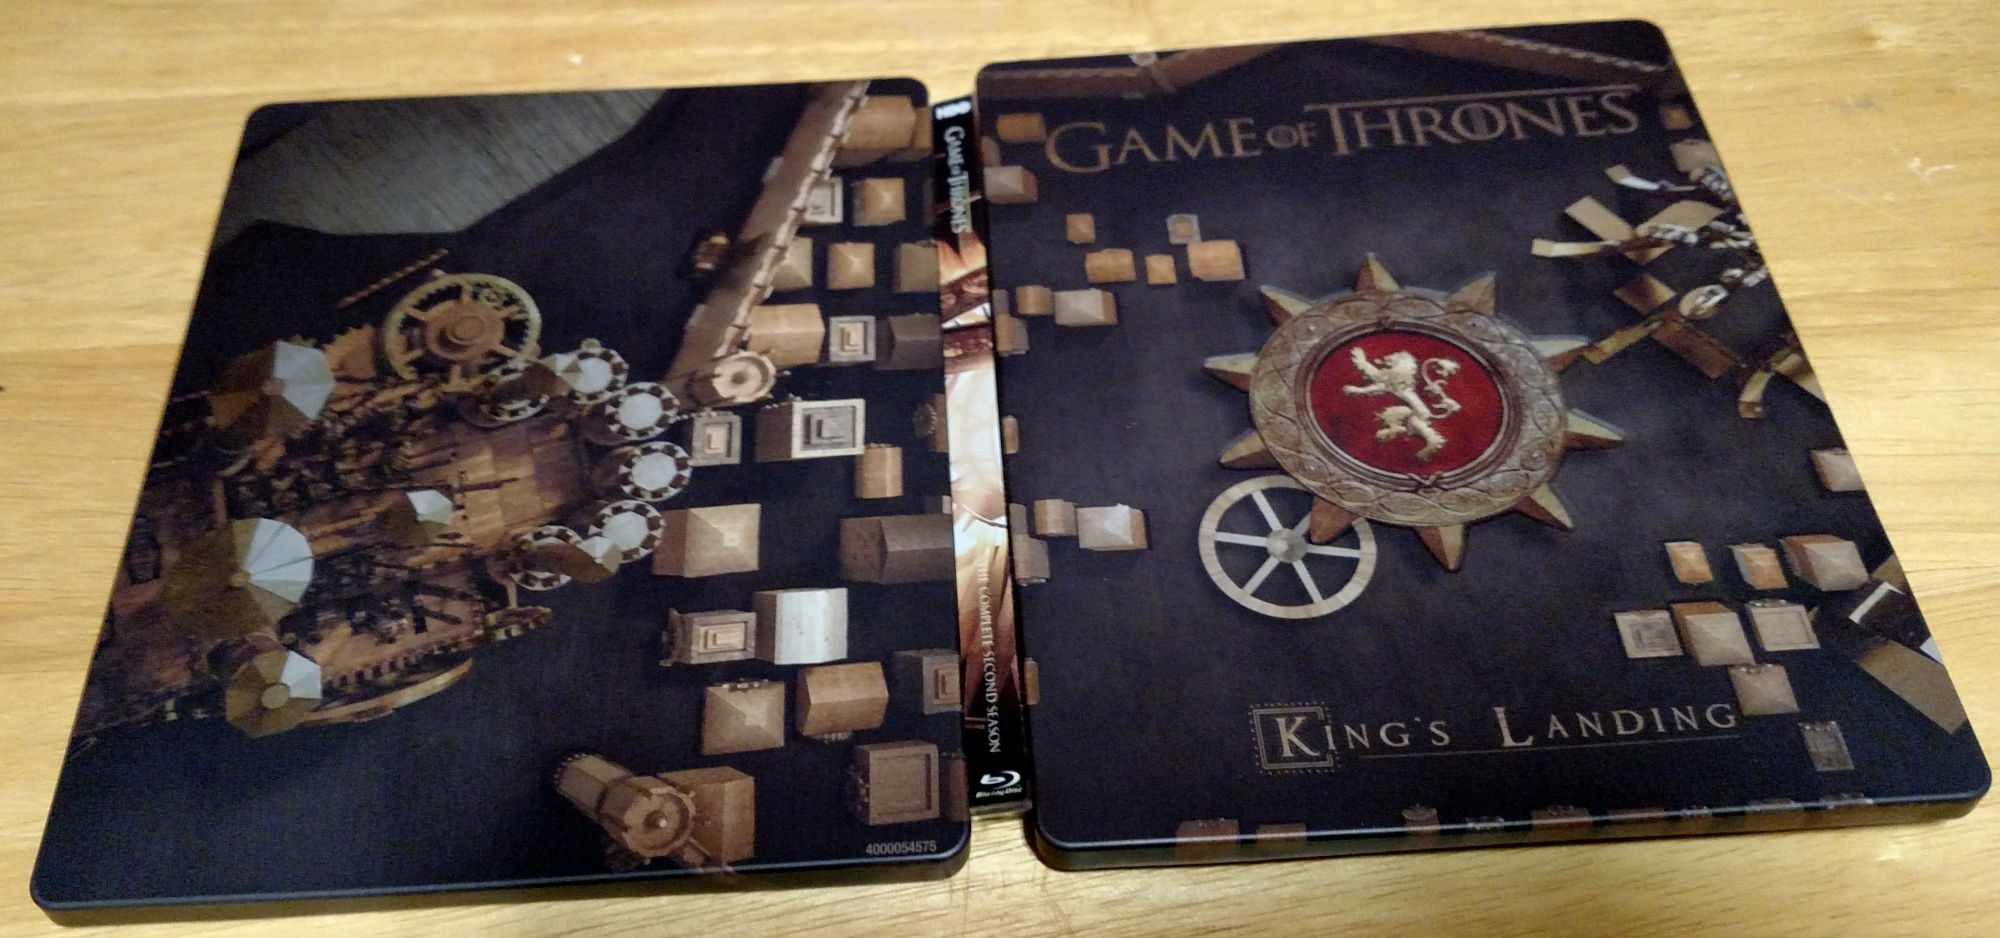 Game of Thrones S2 SteelBook Open